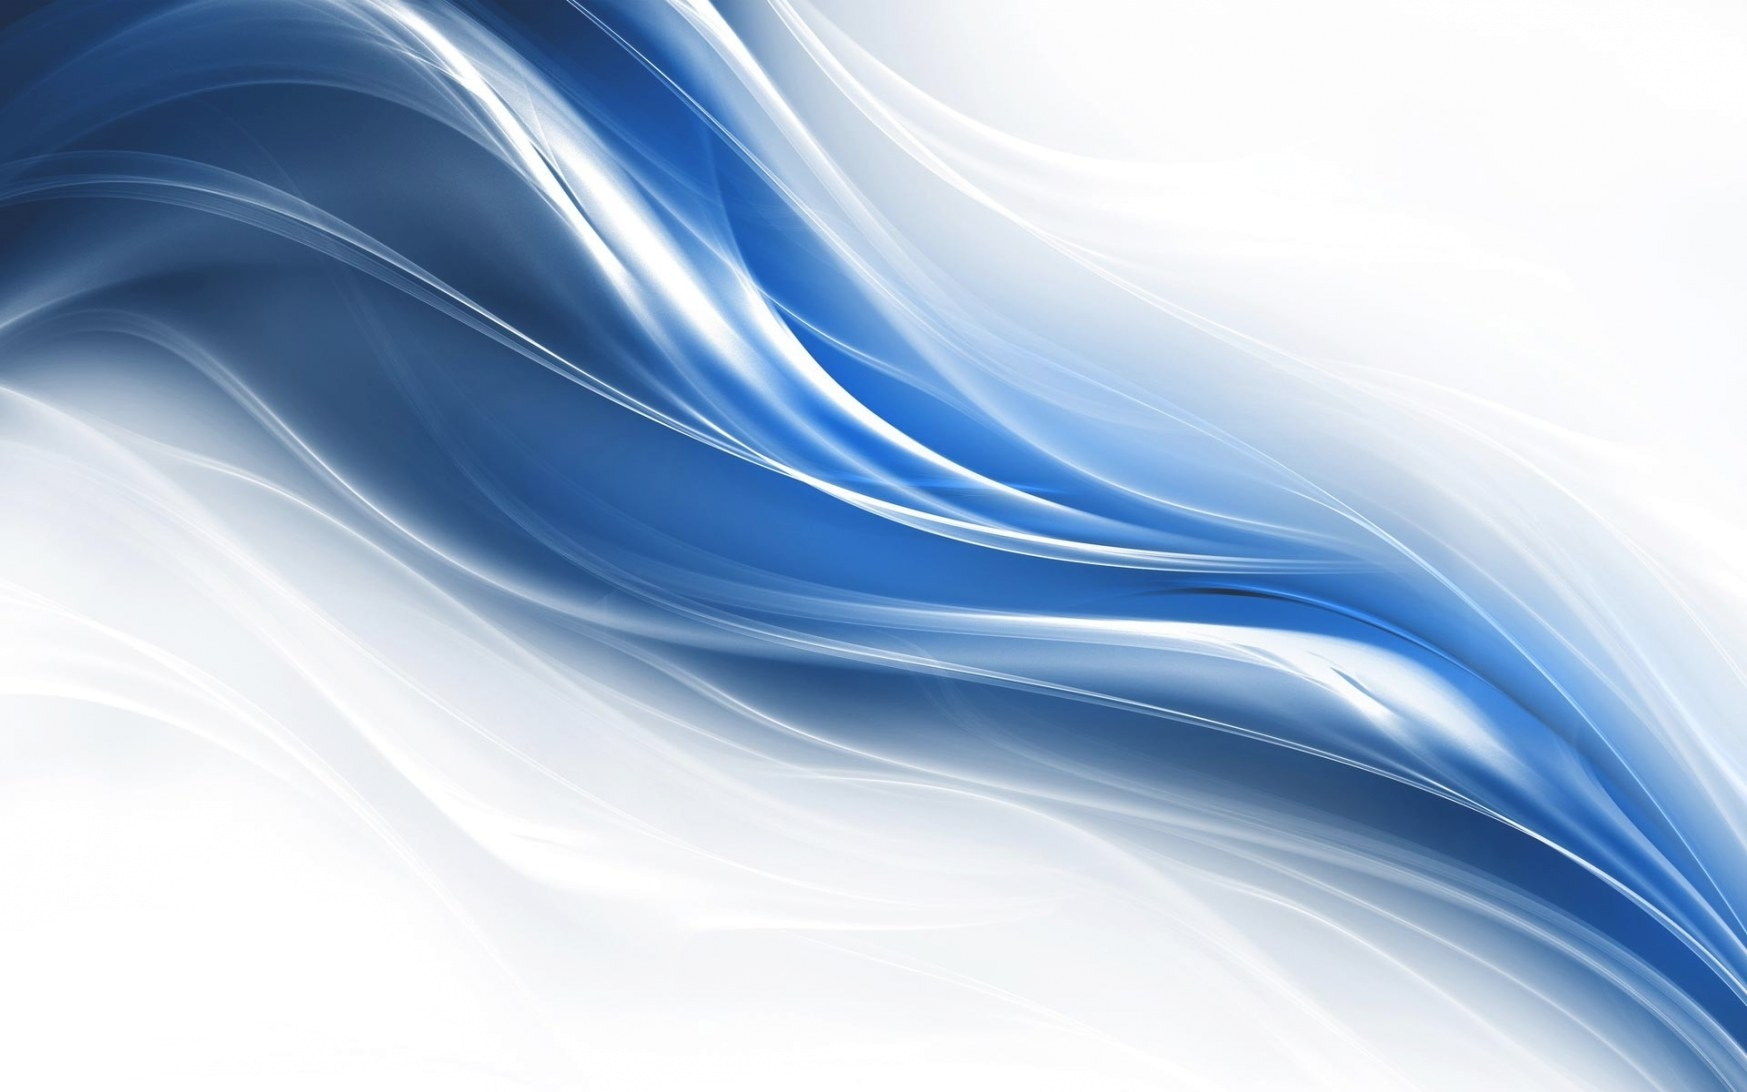 Blue And White Background ·① Download Free Amazing pertaining to Blue And White Wallpaper